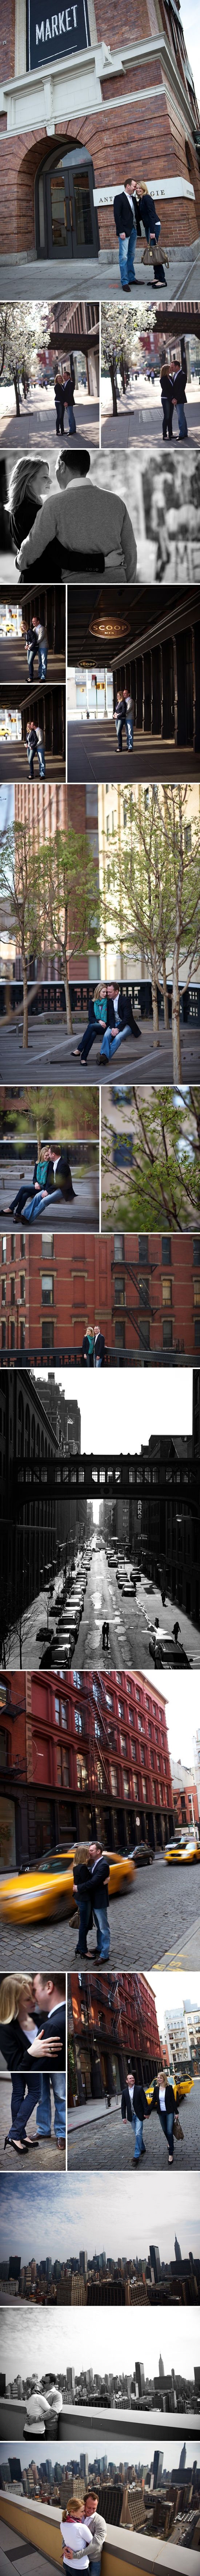 NYC Engagement Photographer | Andrea & Marcus